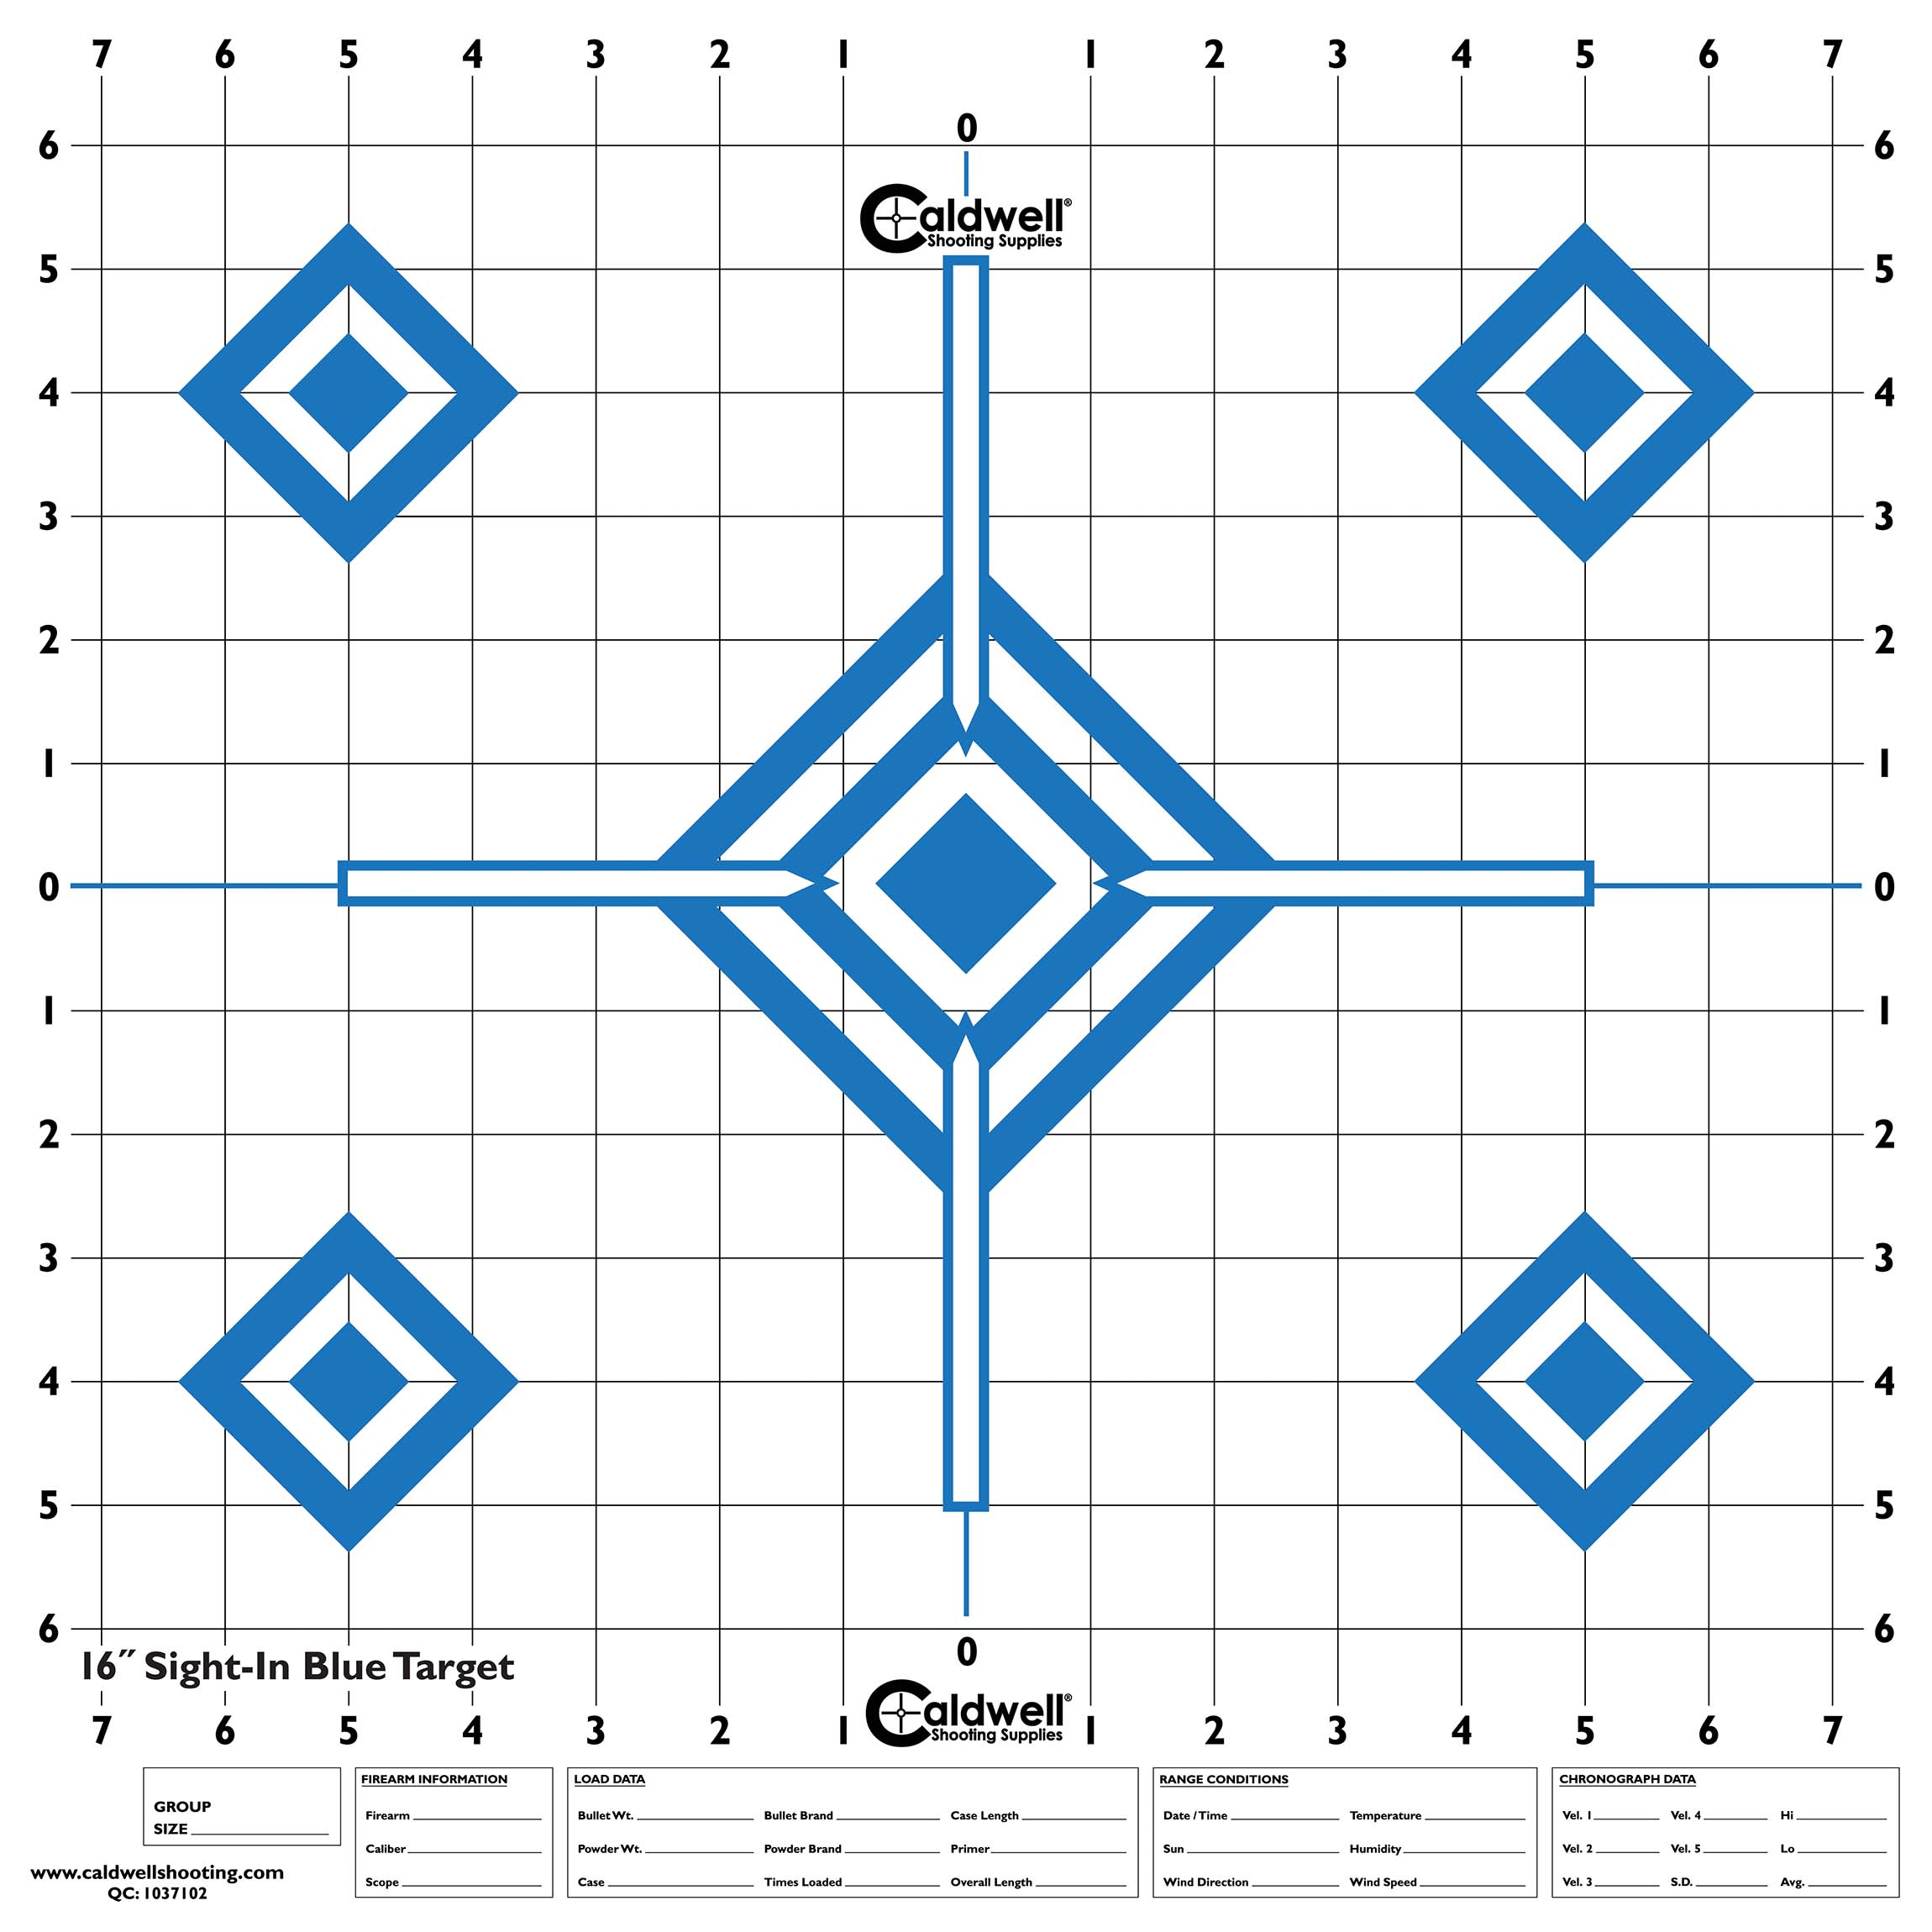 front sight paper targets for sale Speedwell targets and range products made in the usa for over 45 years we provide targets and range equipment to some of the most demanding military, law enforcement and top training organizations worldwide.